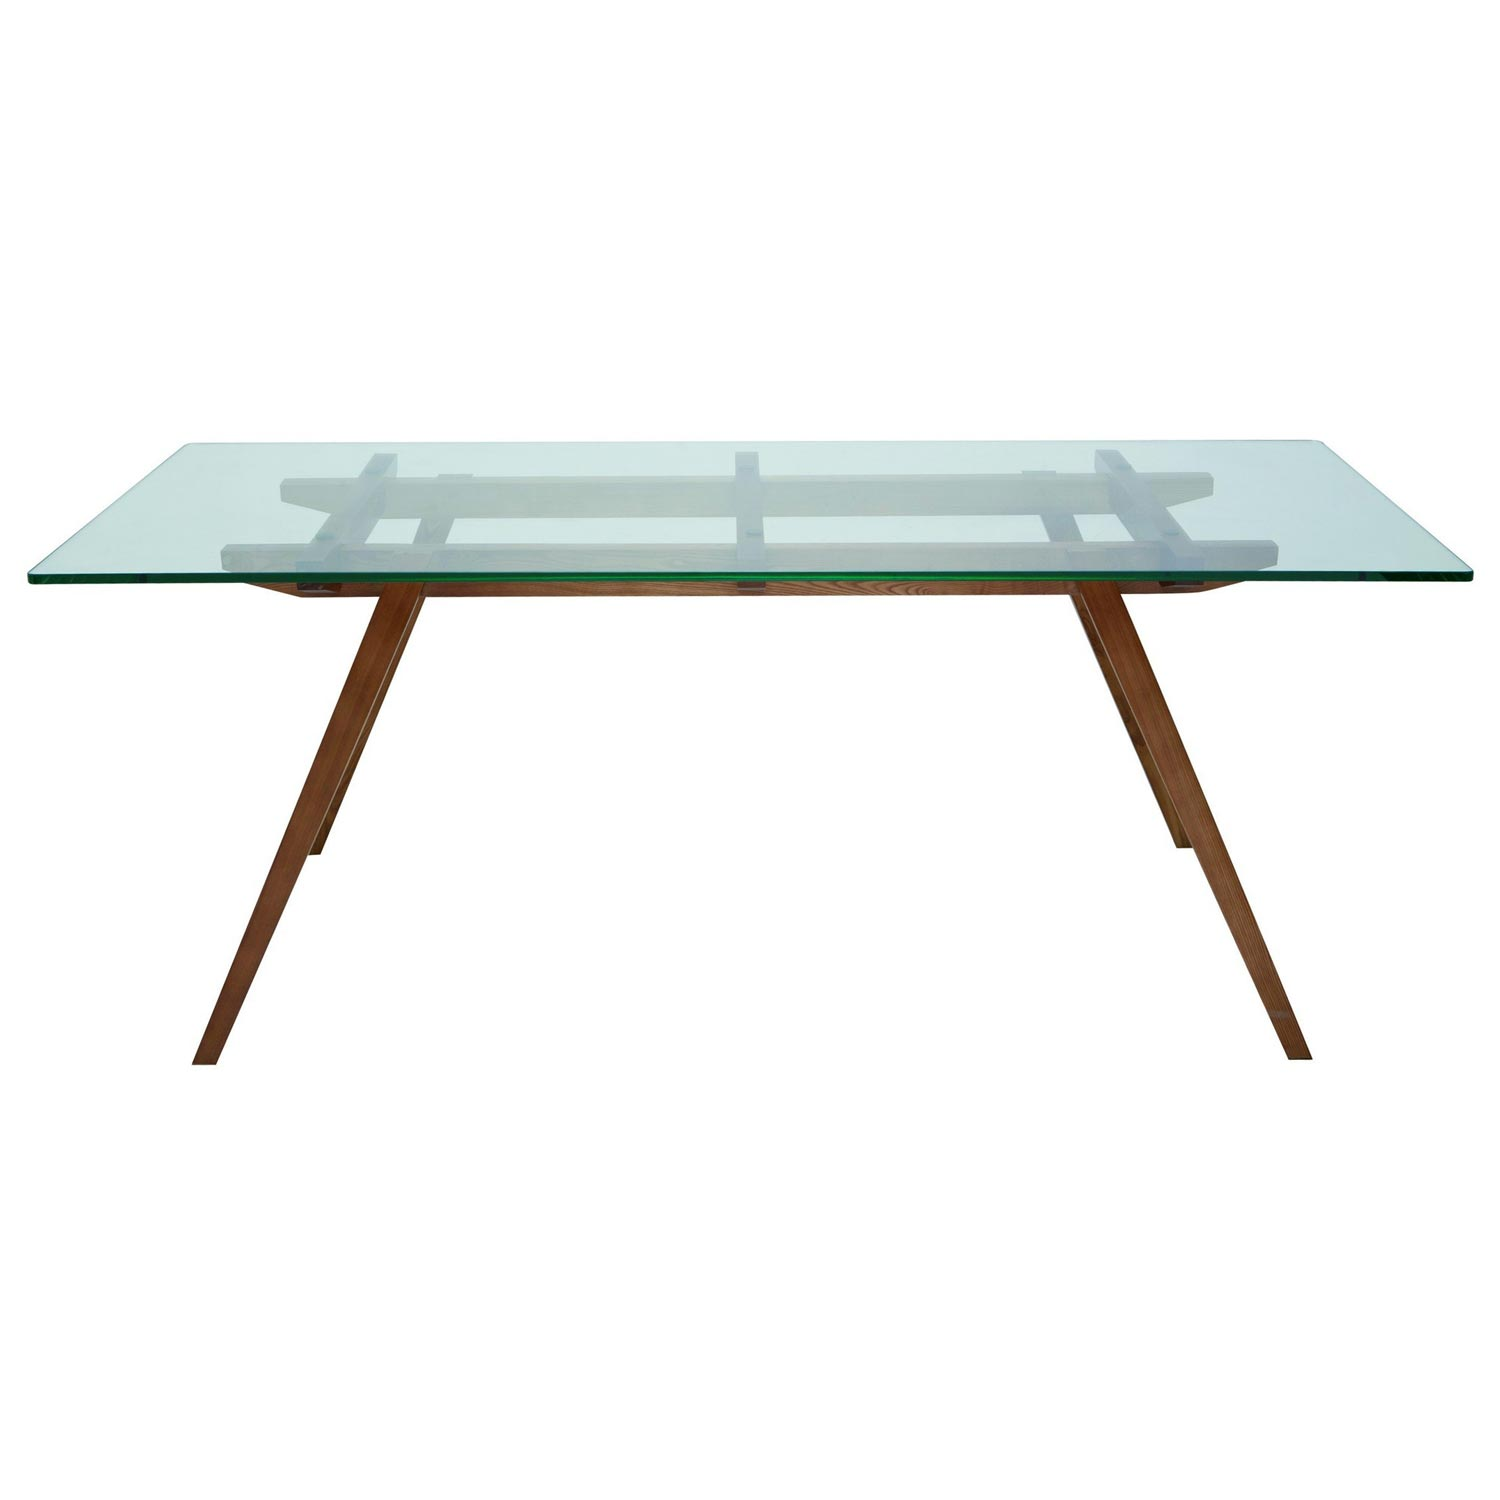 Franz Contemporary Glass Dining Table - Tempered Glass, Walnut - NVO-HGEM14X-DT